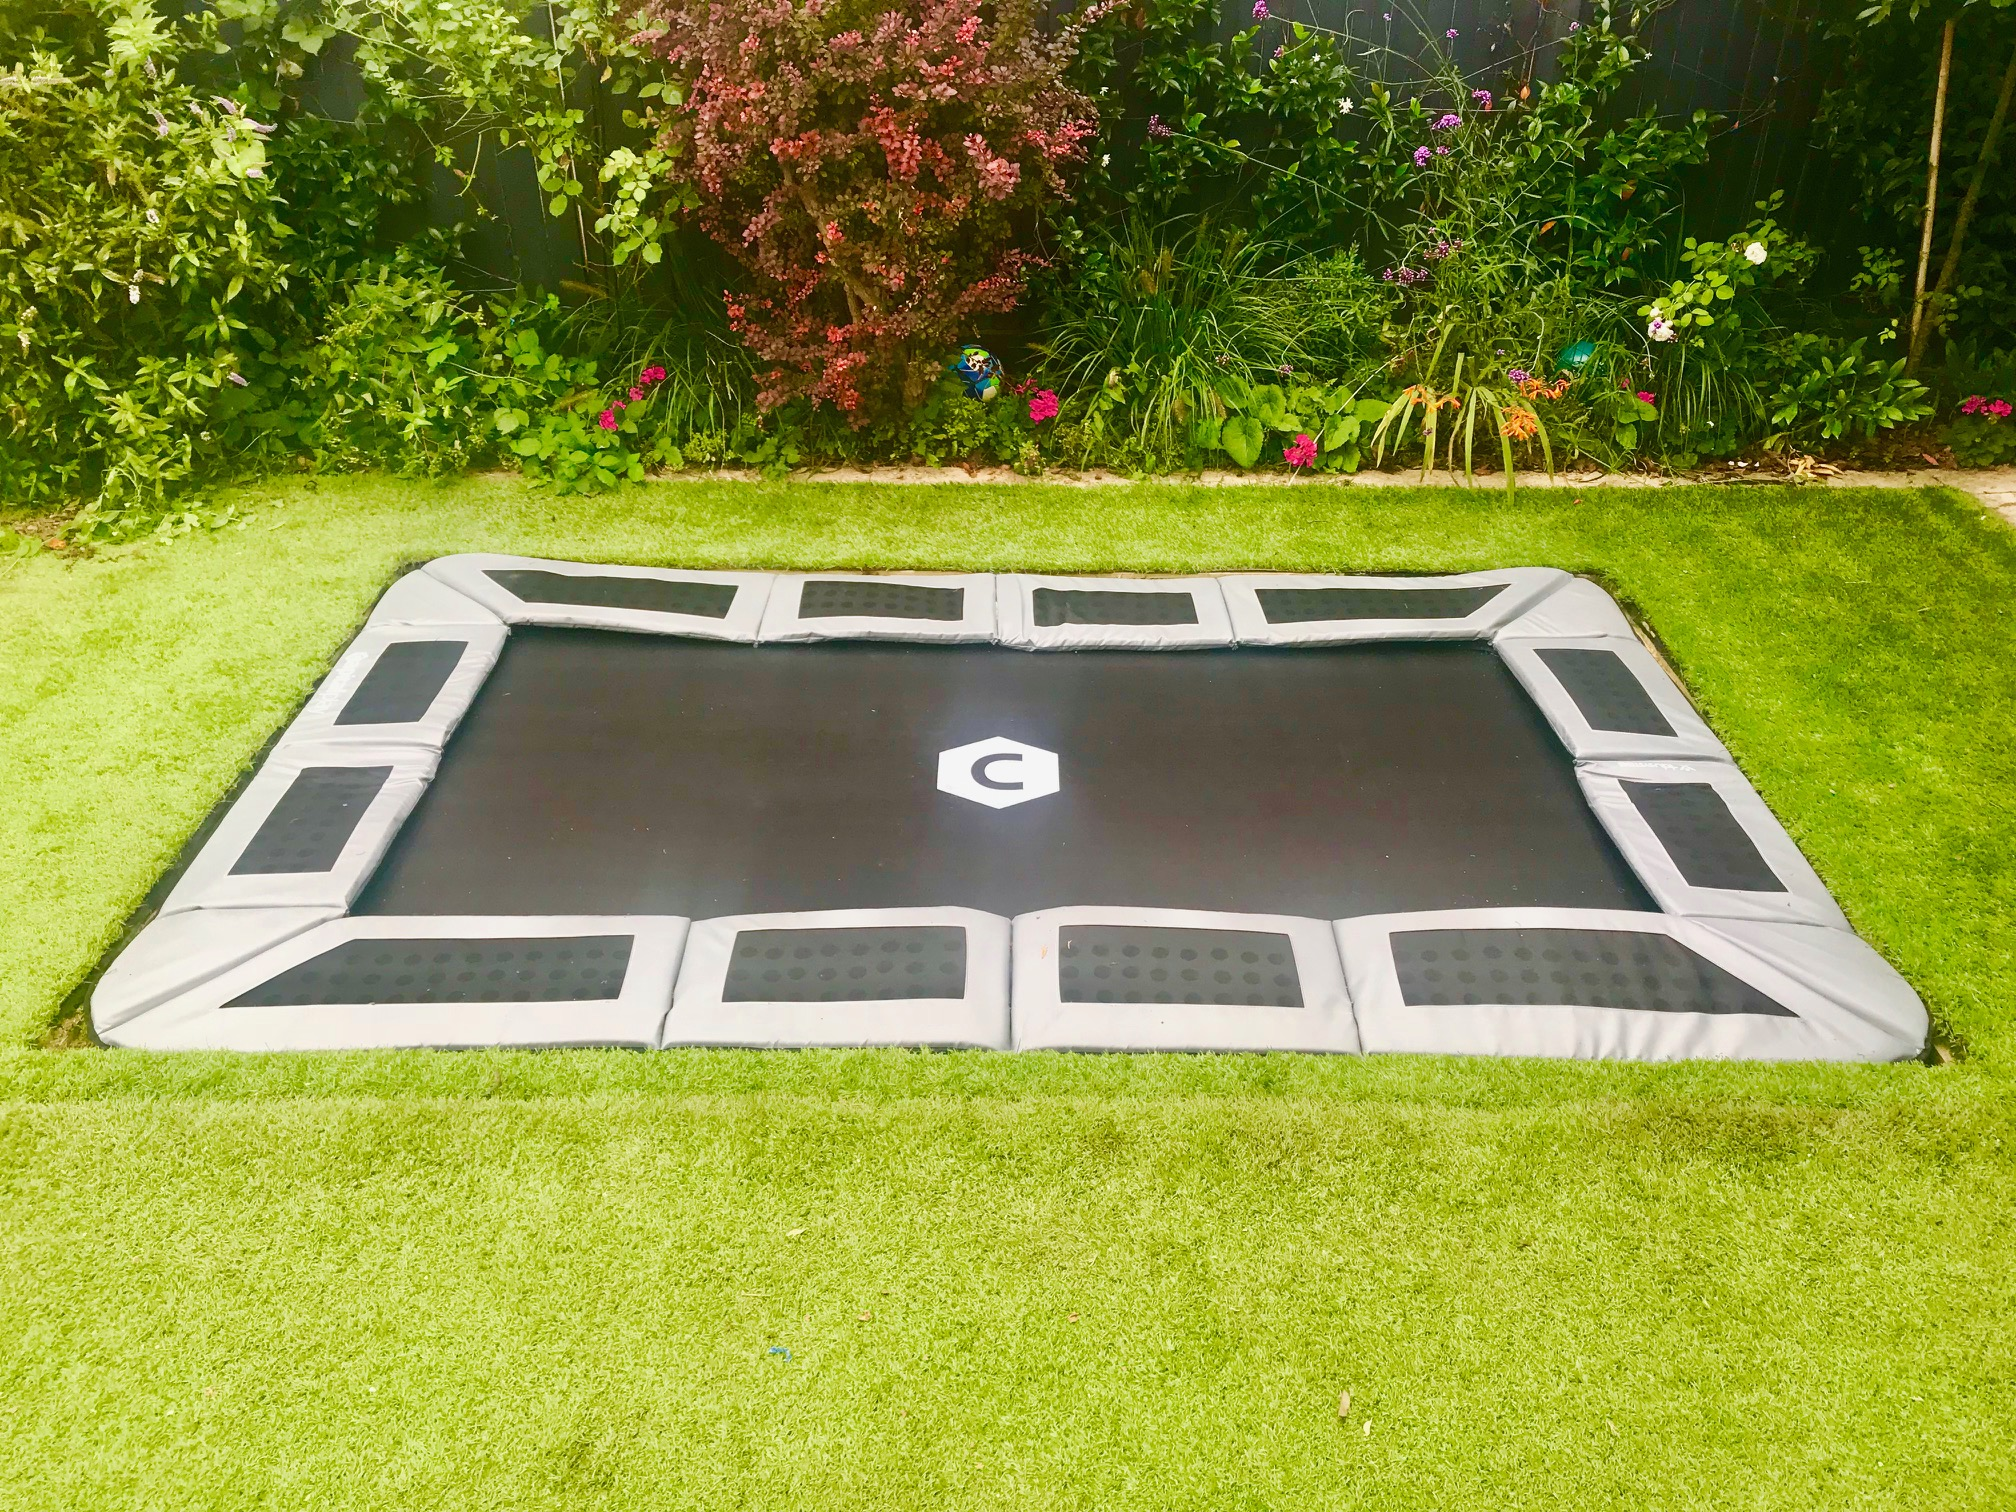 Sunken Trampoline With Artificial Grass And Optional Lid